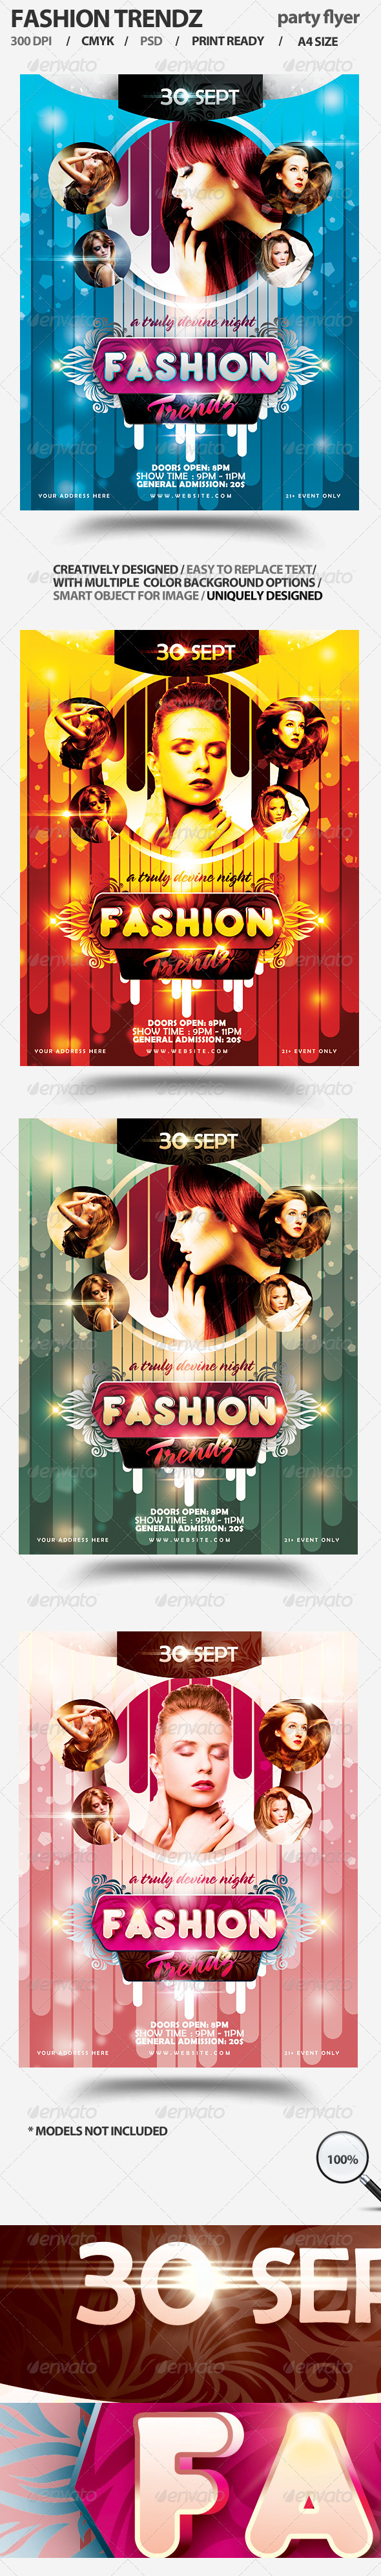 Fashion Trendz Party Flyer - Miscellaneous Events